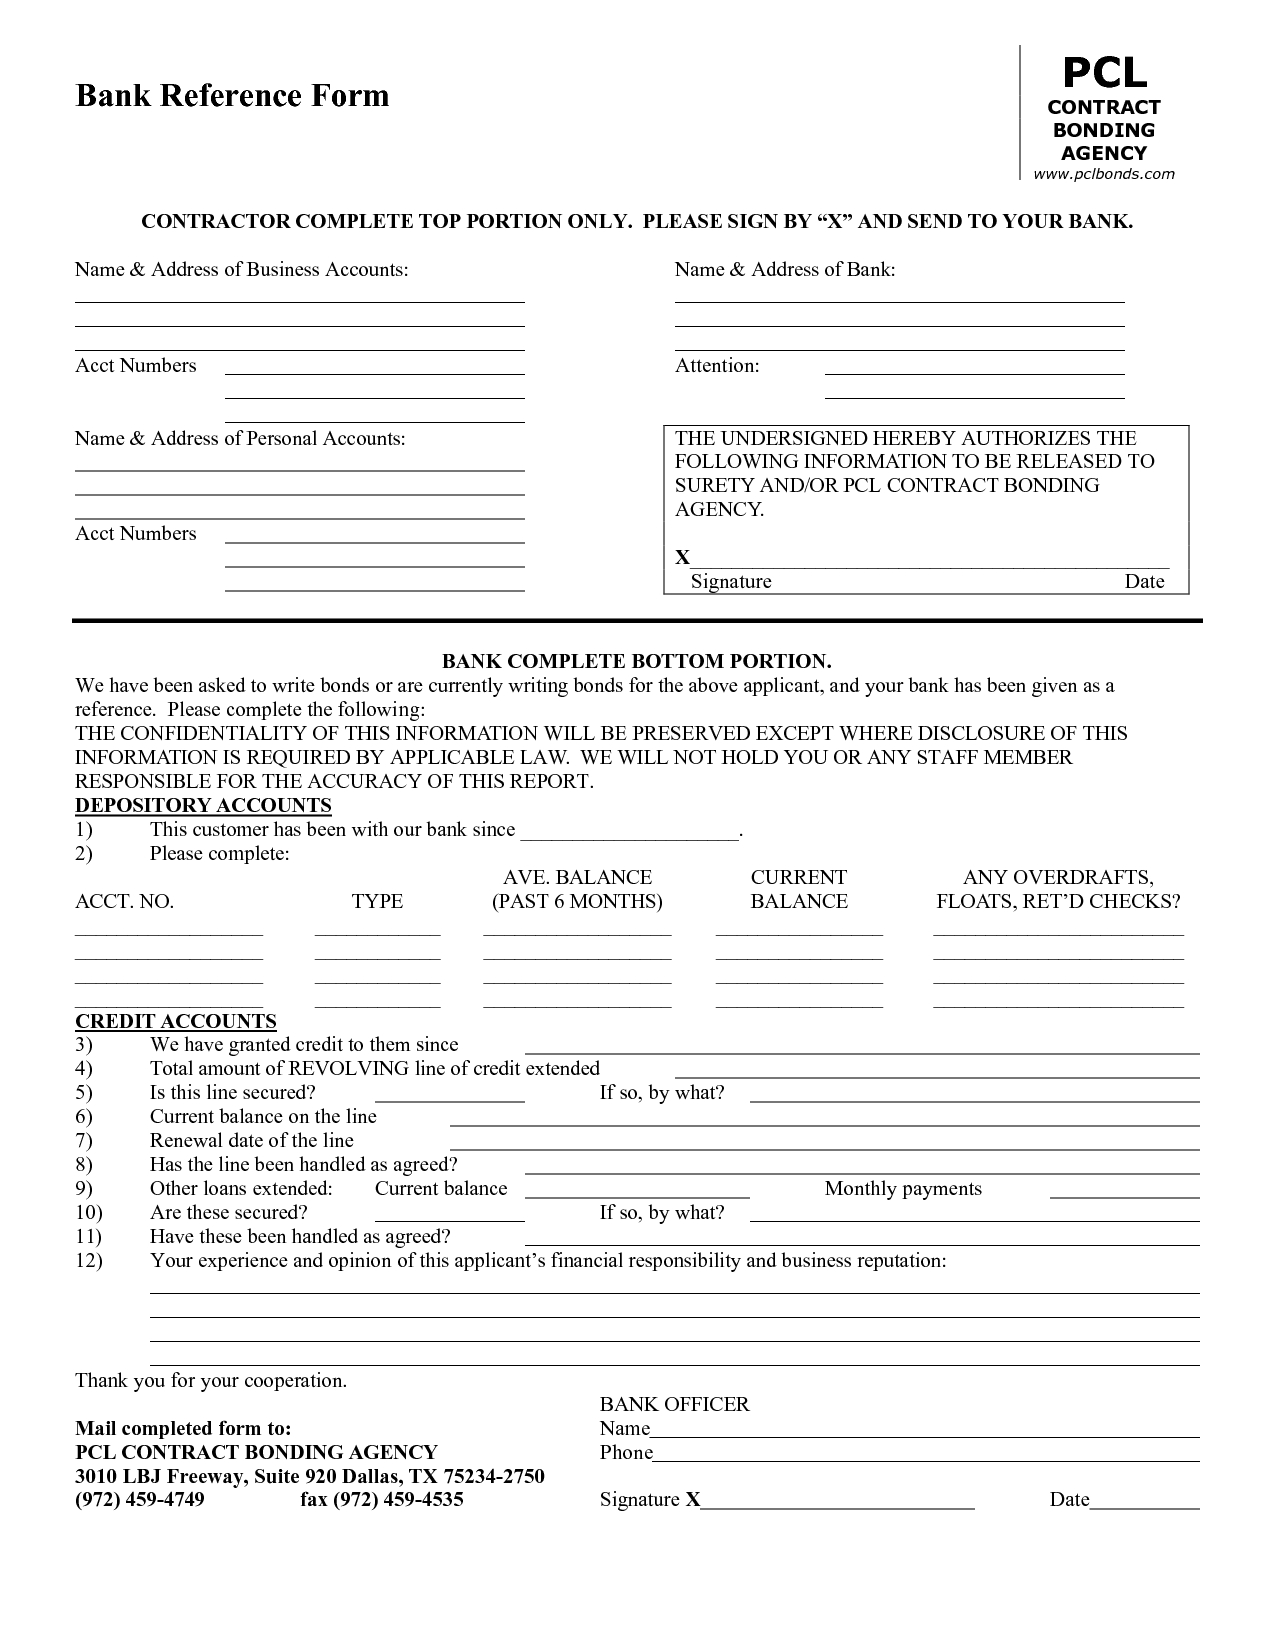 Business Credit Reference Form Template | Bagnas - Business Credit - Free Printable Business Credit Application Form